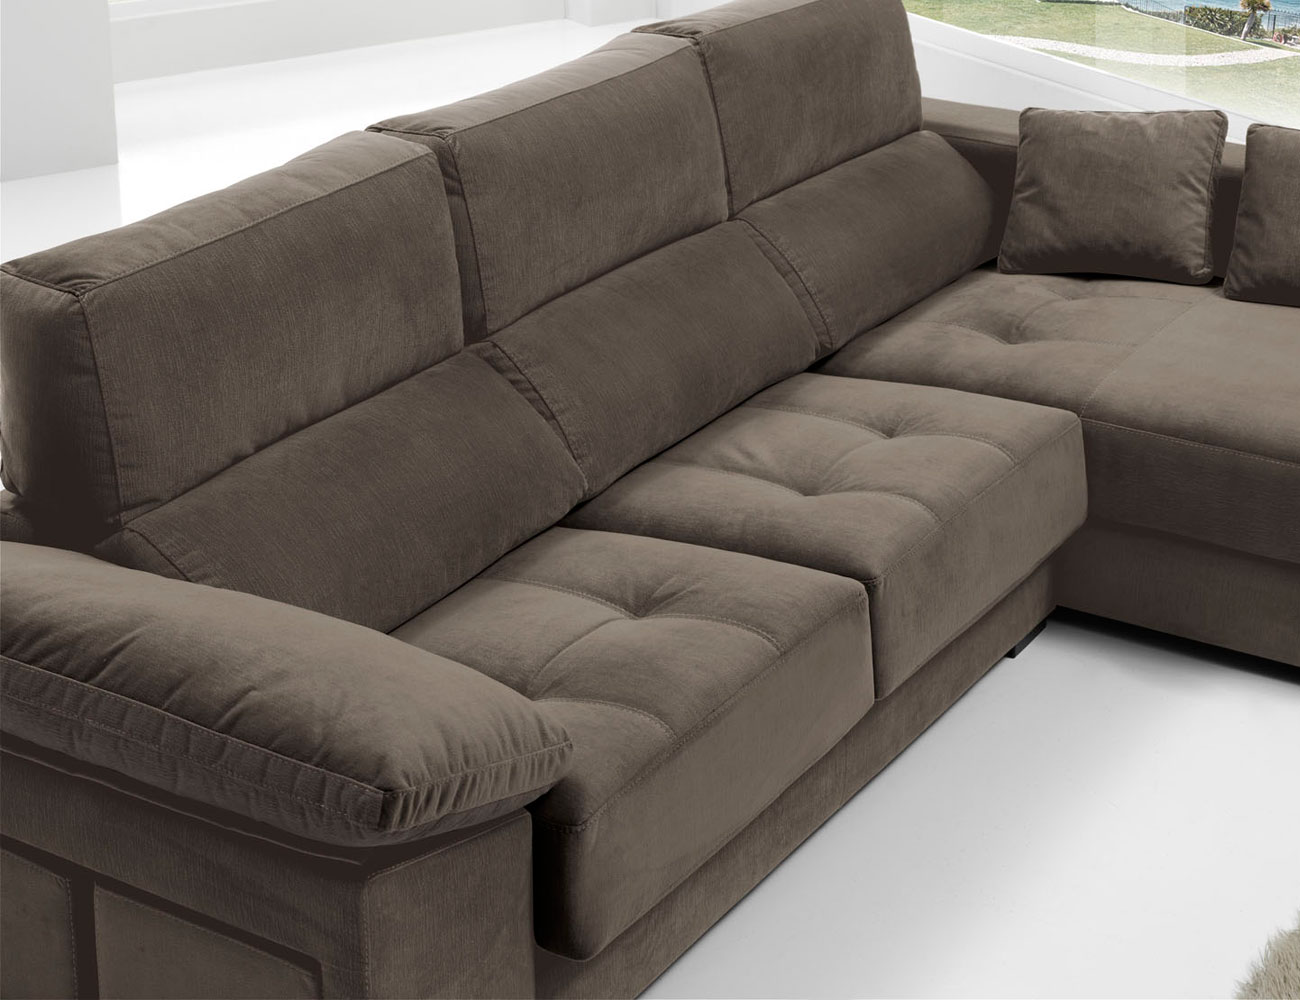 Sofa chaiselongue anti manchas bering pouf 240